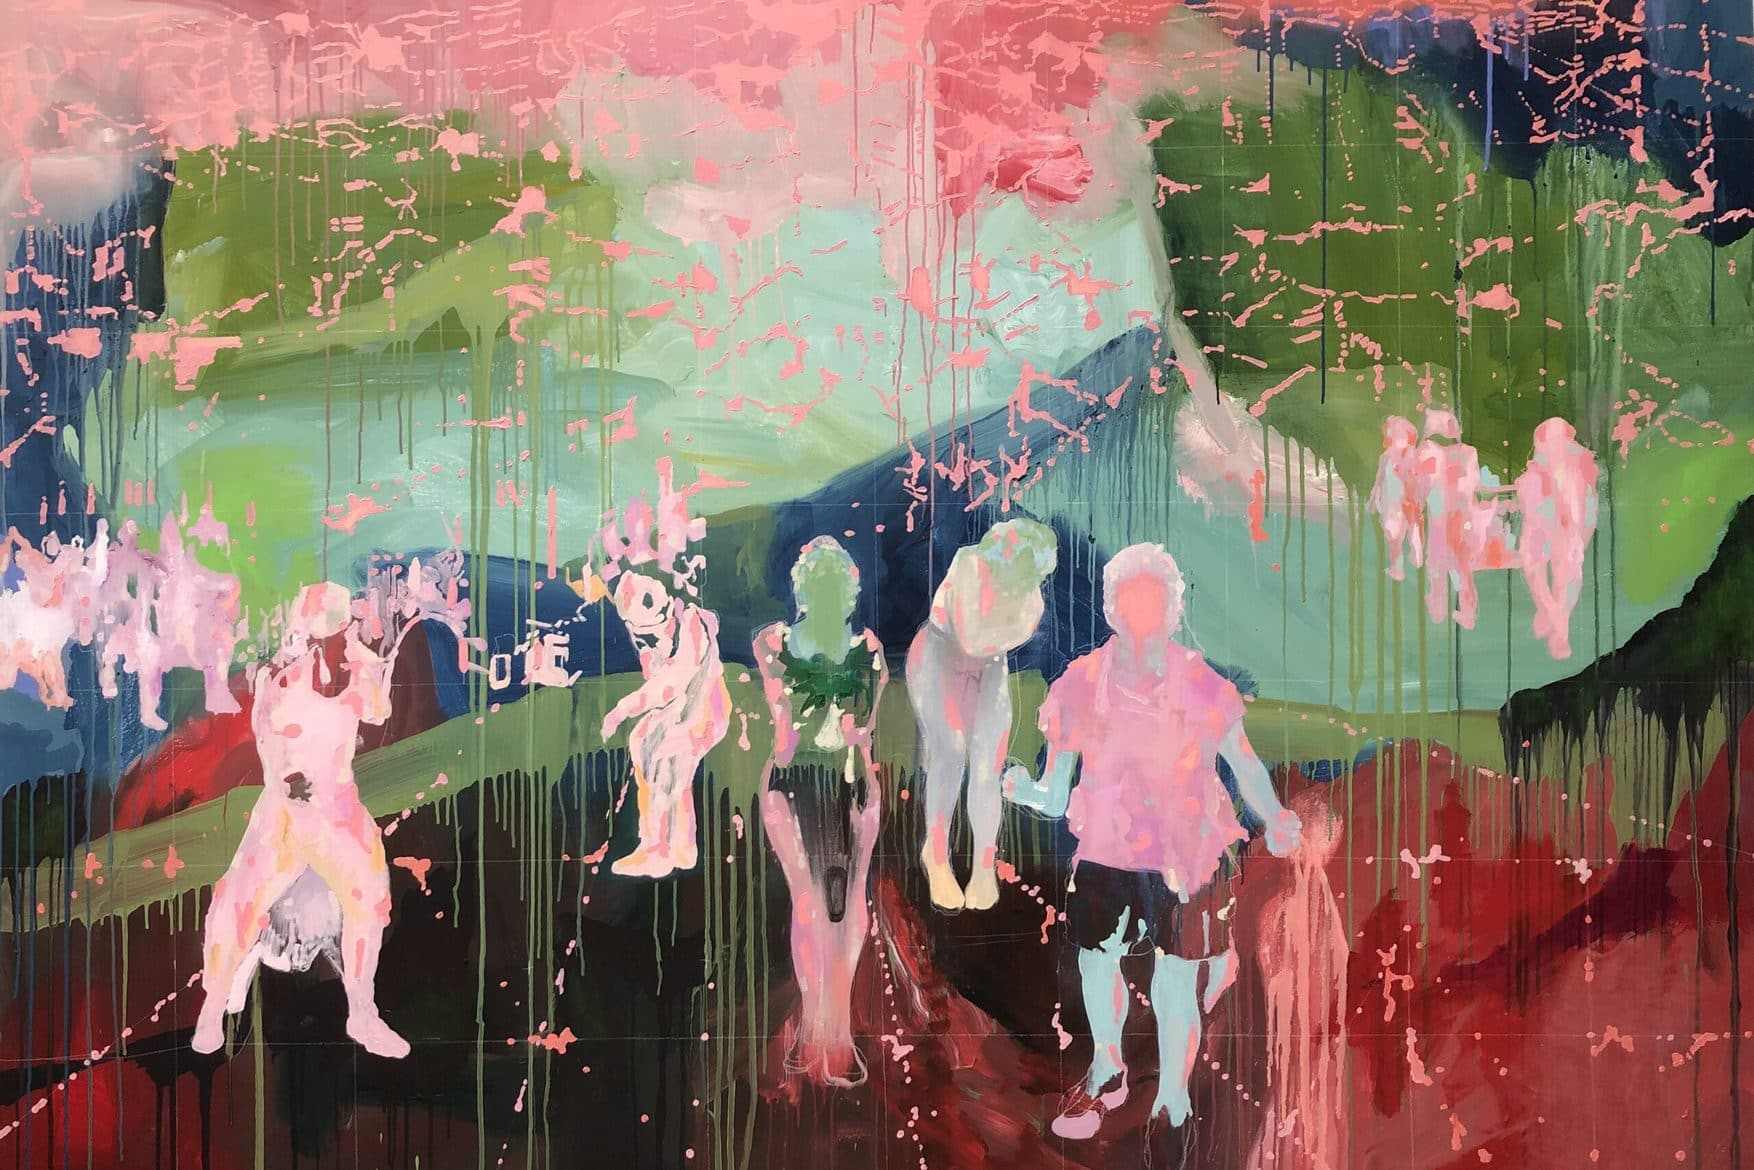 'Rose Group Forming', 2021, acrylic and oil on linen, 183 x 250 cm